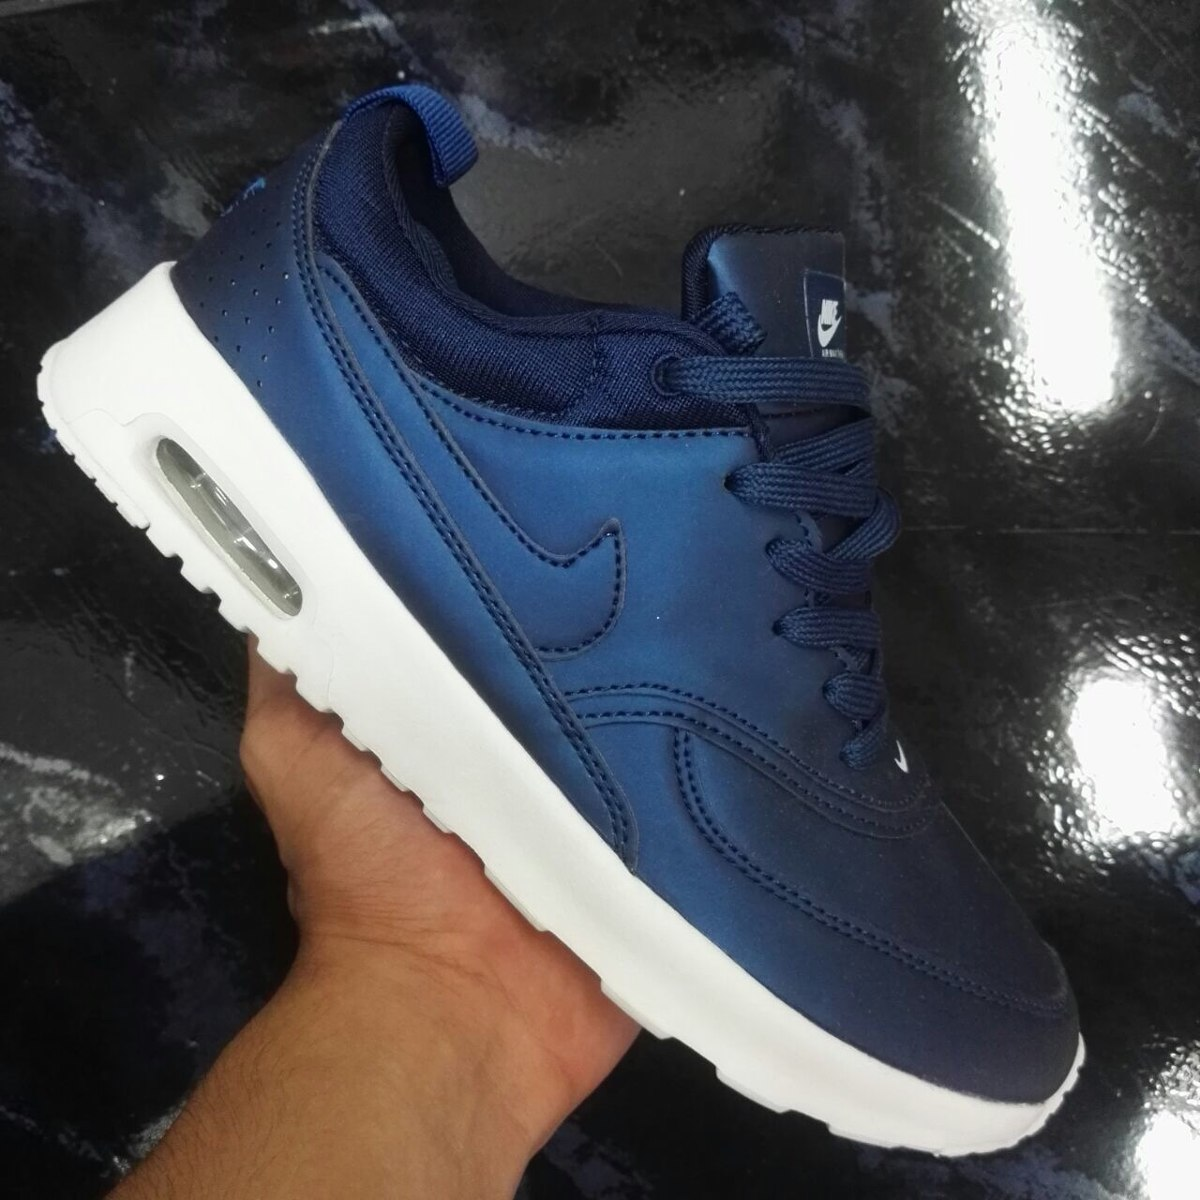 sweden nike air max thea mujeres azul 8c09f ed129